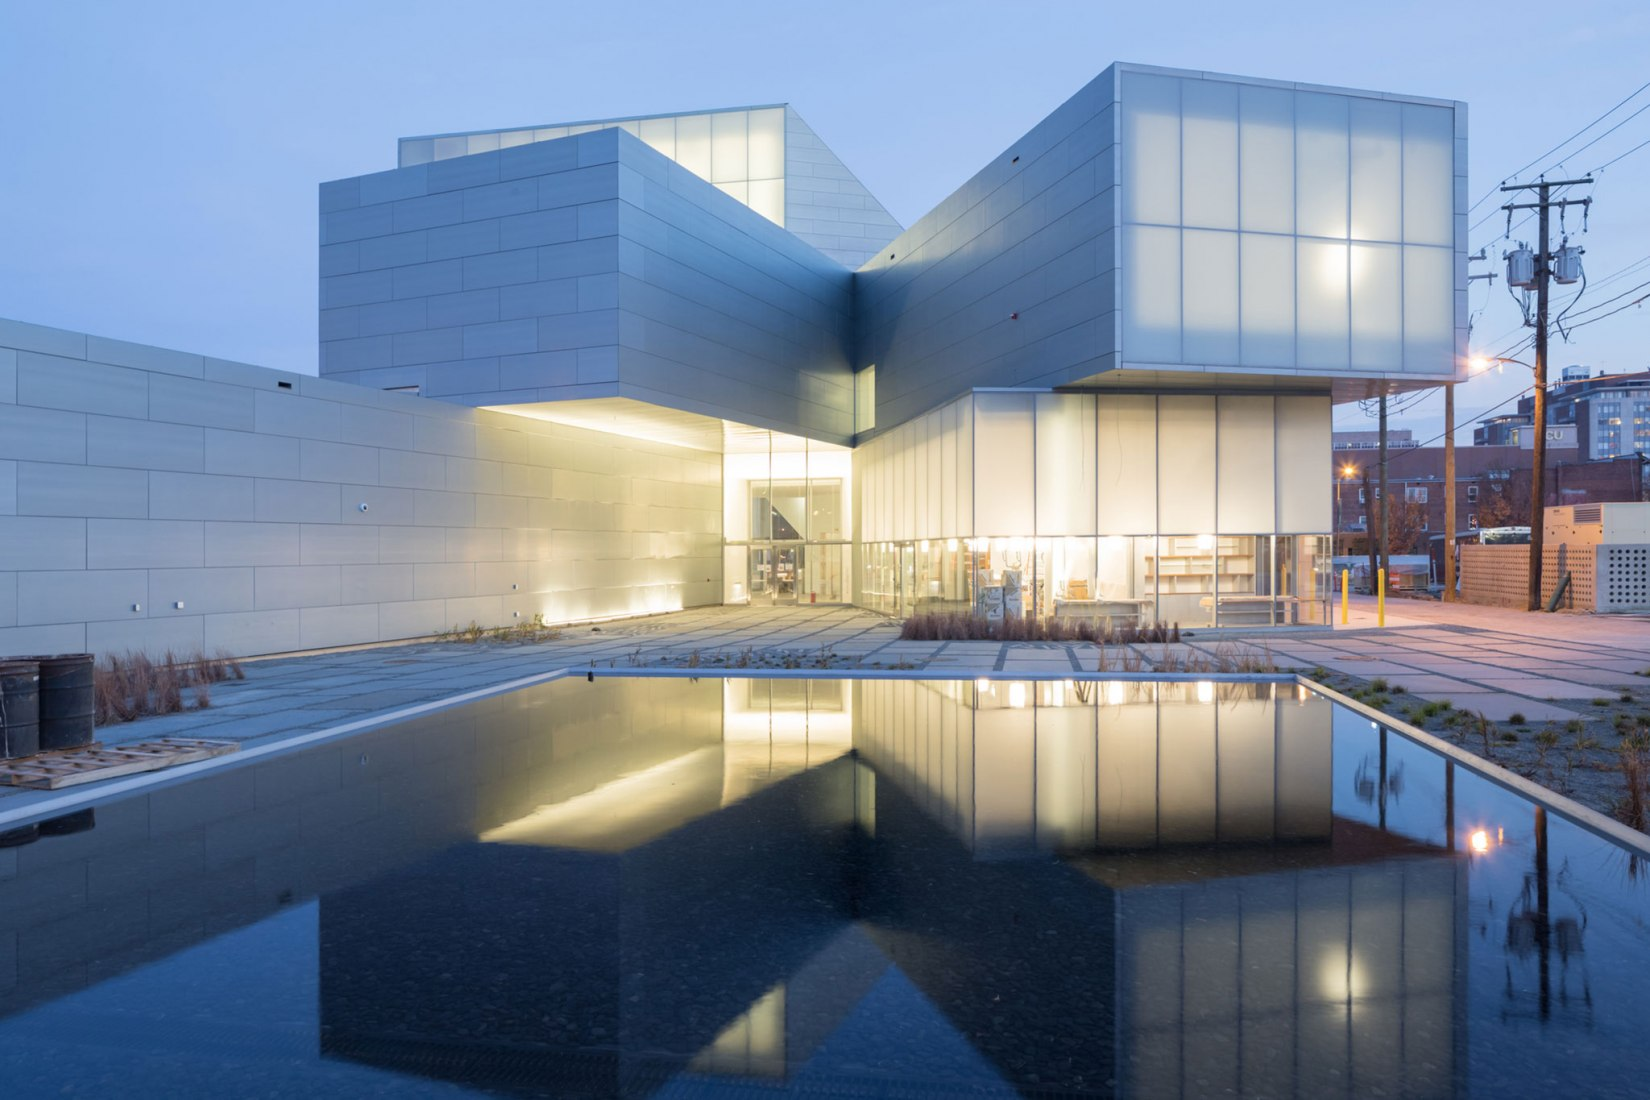 Institute for Contemporary Art, VCU por Steven Holl Architects. Fotografía © Iwan Baan